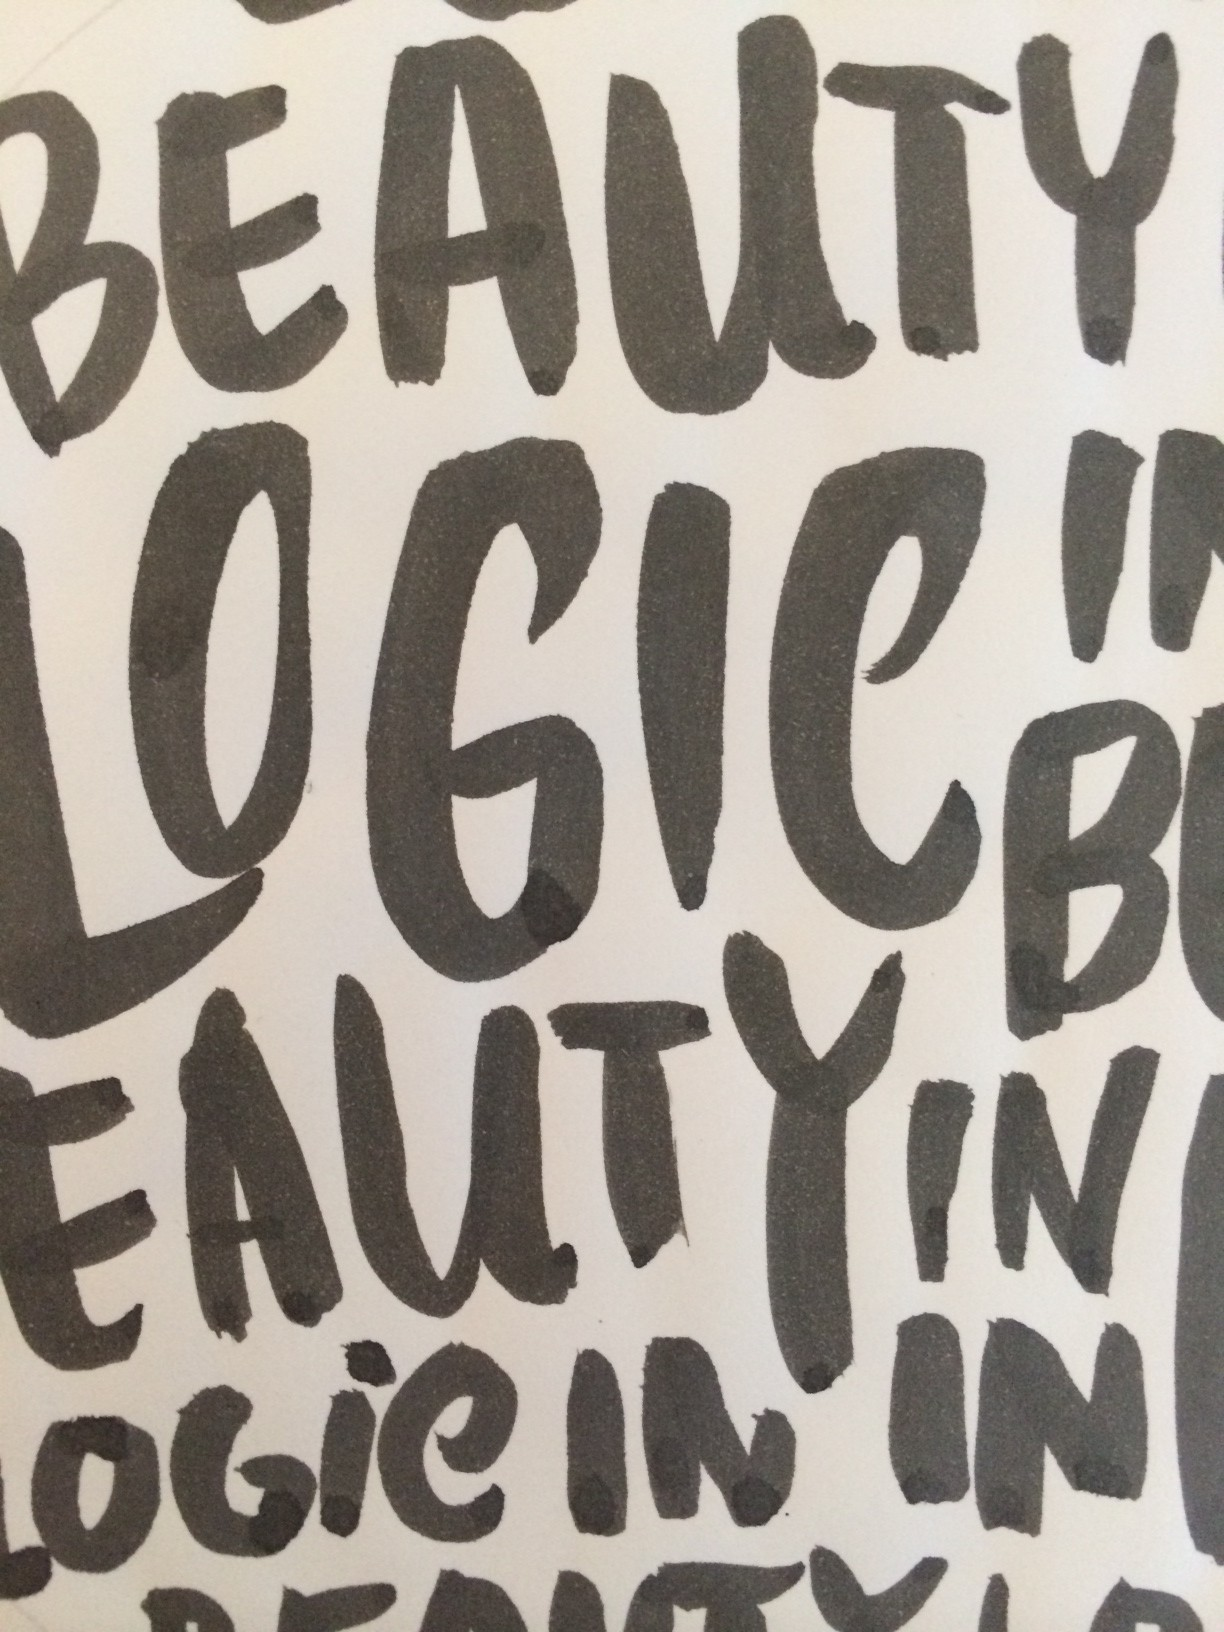 logic/beauty